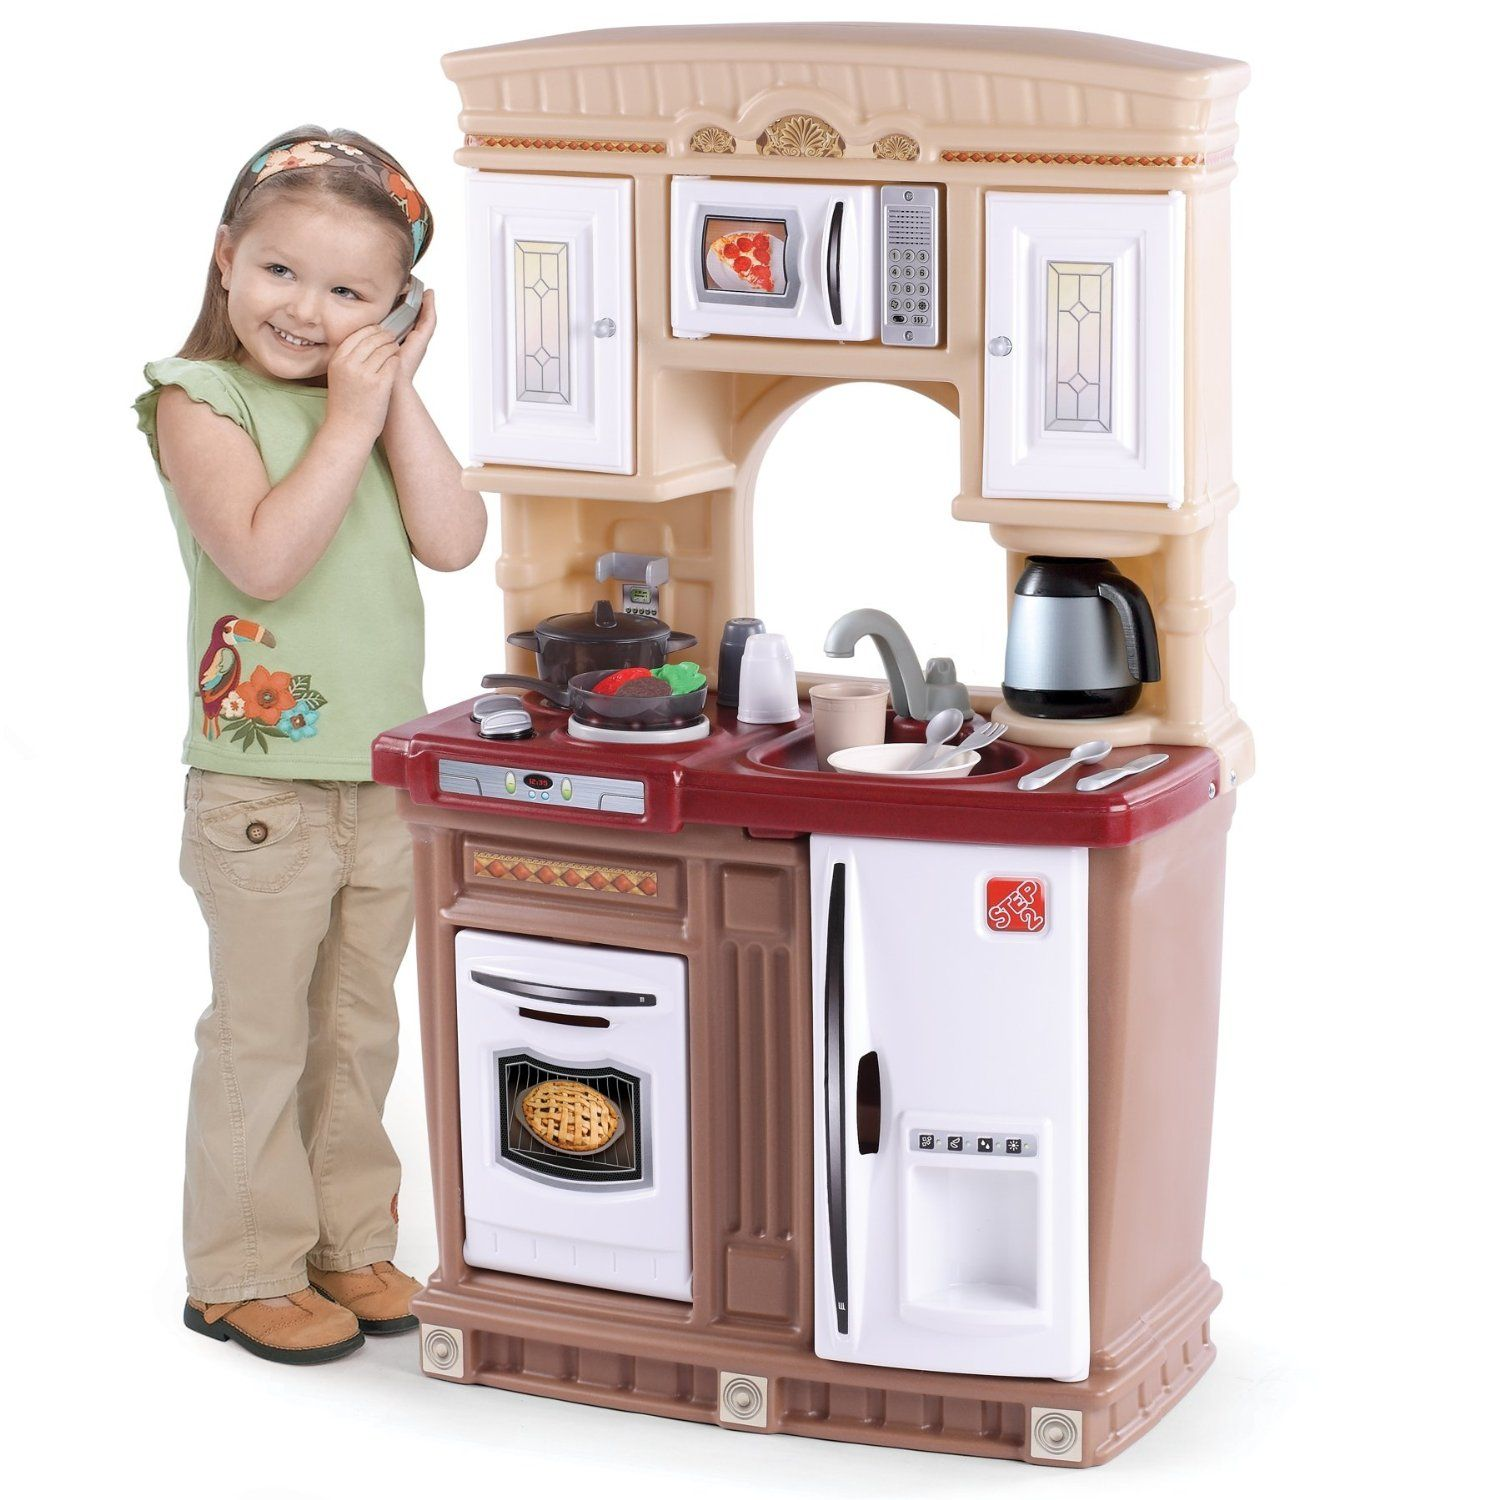 Amazon.com: Step2 Lifestyle Fresh Accents Kitchen: Toys & Games ...